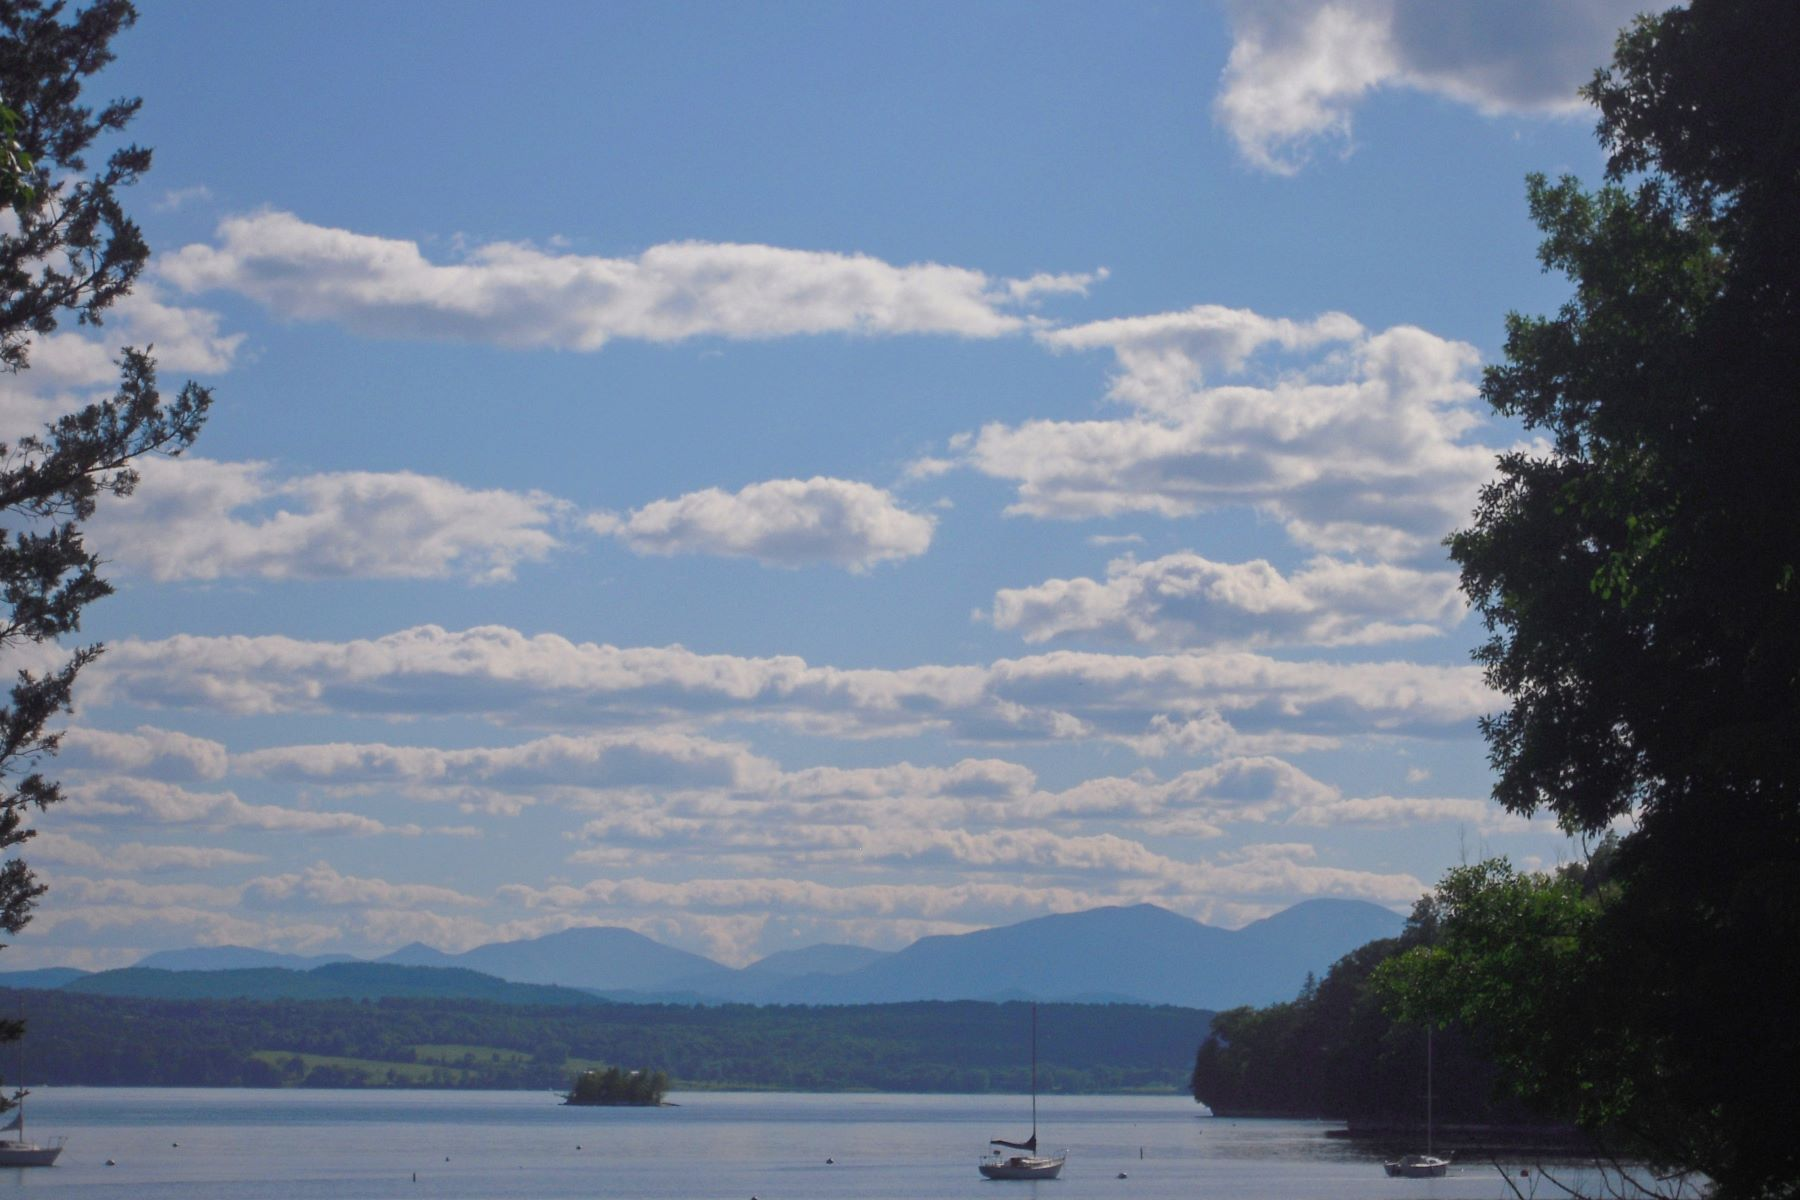 Land for Sale at 1033 Converse Bay Road 1, Charlotte 1033 Converse Bay Rd 1 Charlotte, Vermont 05445 United States